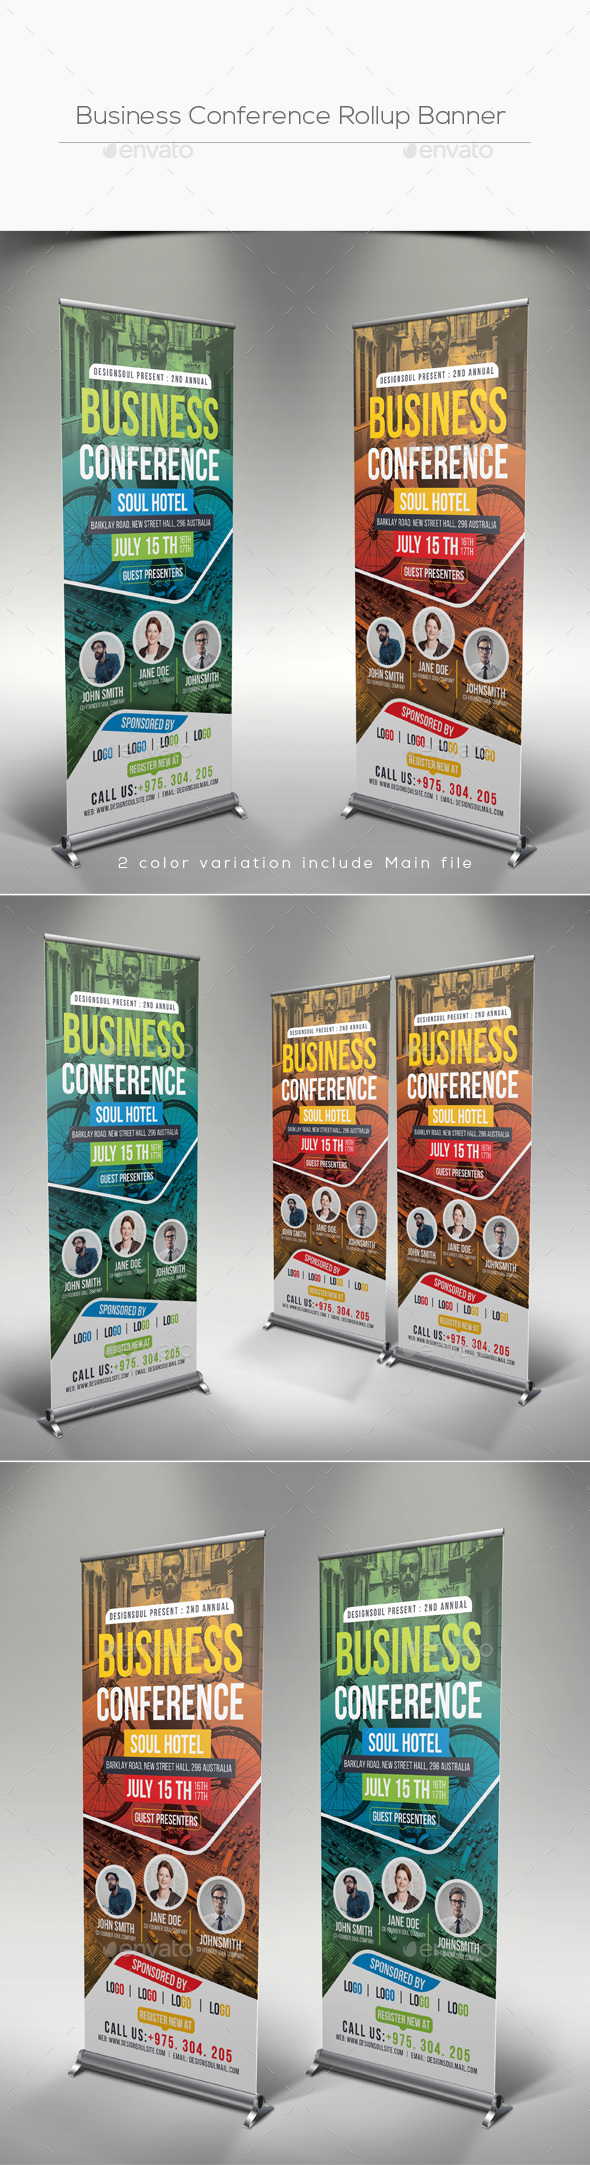 Business Conference Rollup Banner - Signage Print Templates